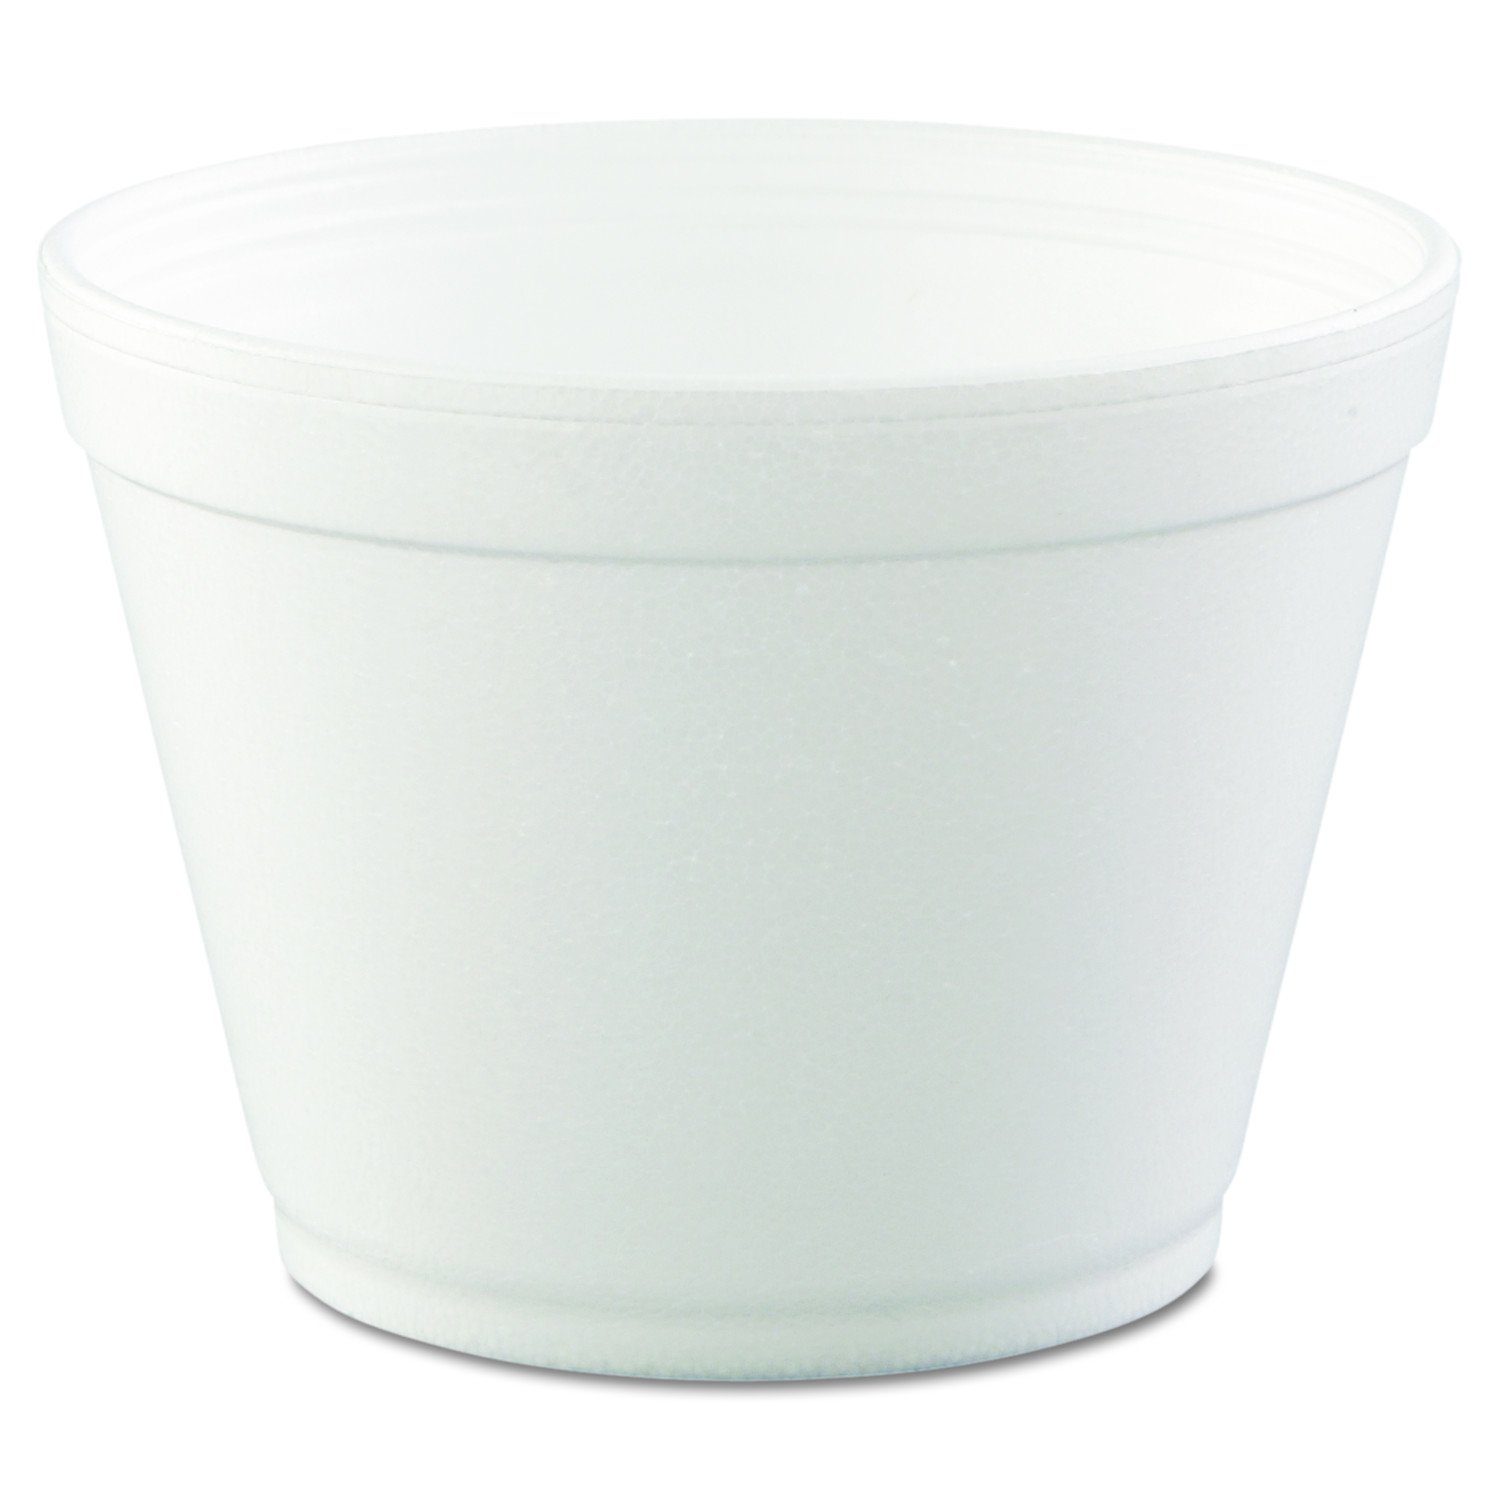 DART 16MJ32 Foam Containers,16oz, White, 25 per Bag (Case of 20 Bags)